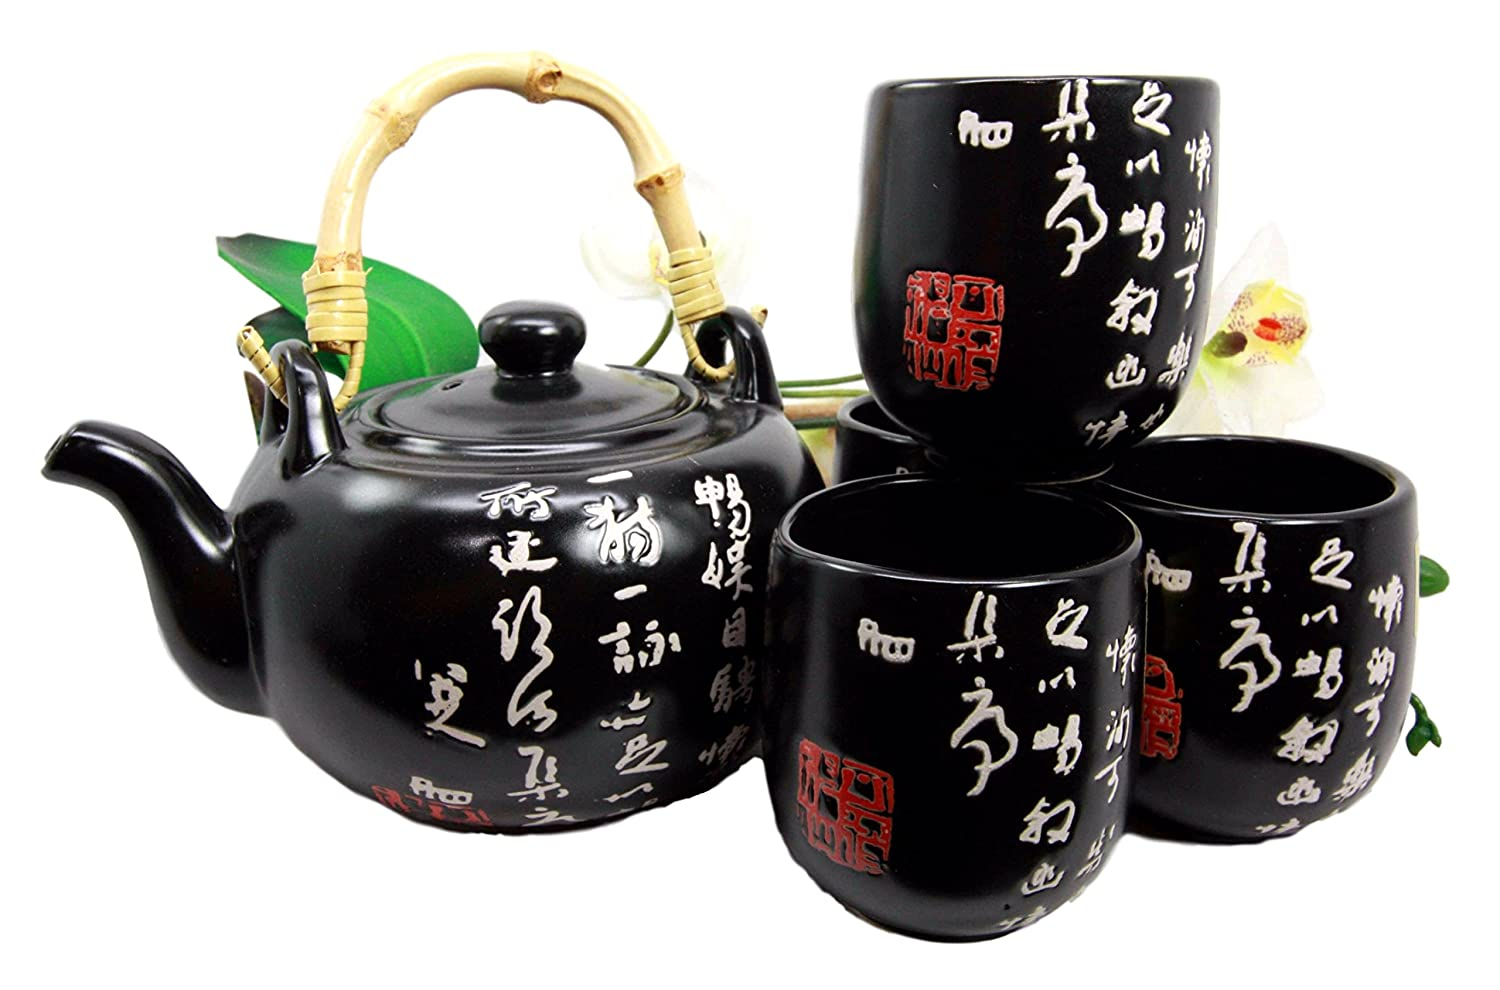 Ebros Gift Asian Living Fusion Chinese Calligraphy Black Glazed Porcelain 27oz Tea Pot With Cups Set Serves 4 As Teapots And Teacups China Kitchen And Home Decor Collectible Party Hosti